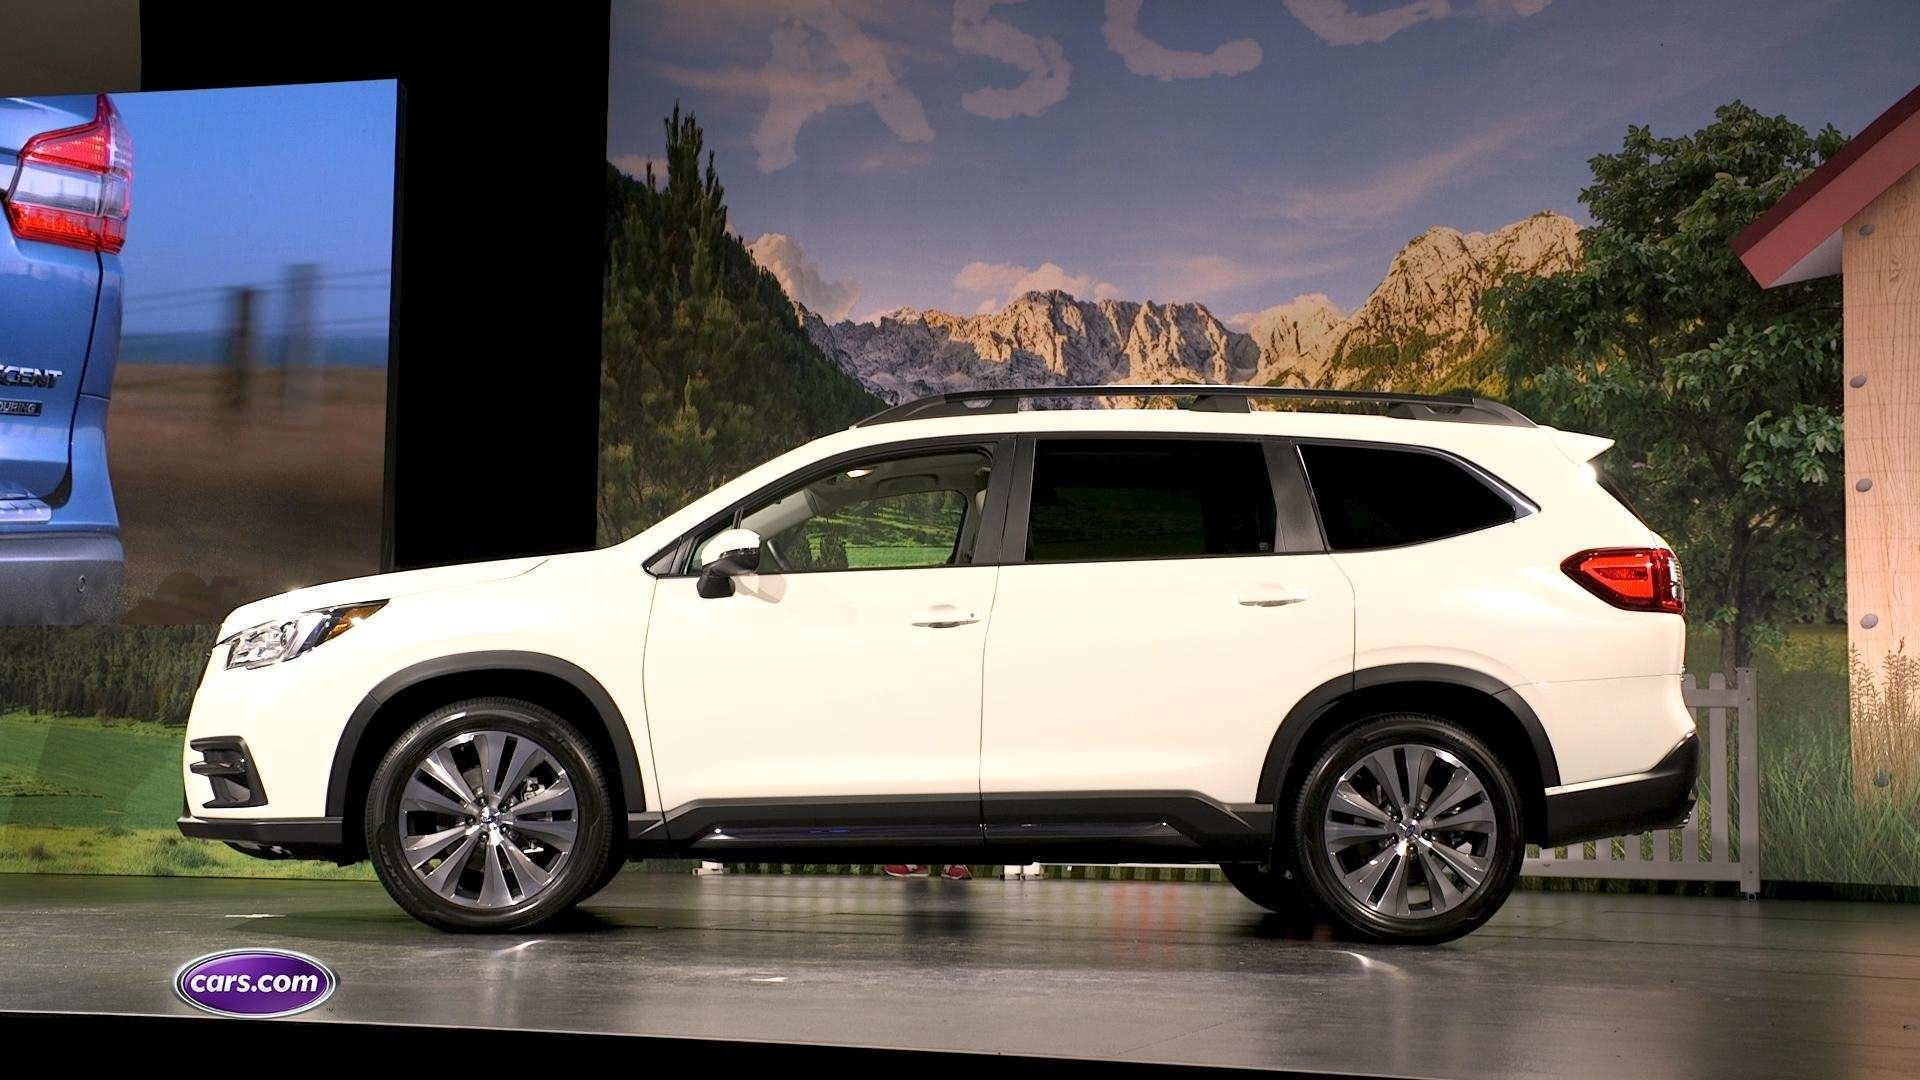 52 Concept of 2019 Subaru Ascent Dimensions Overview for 2019 Subaru Ascent Dimensions